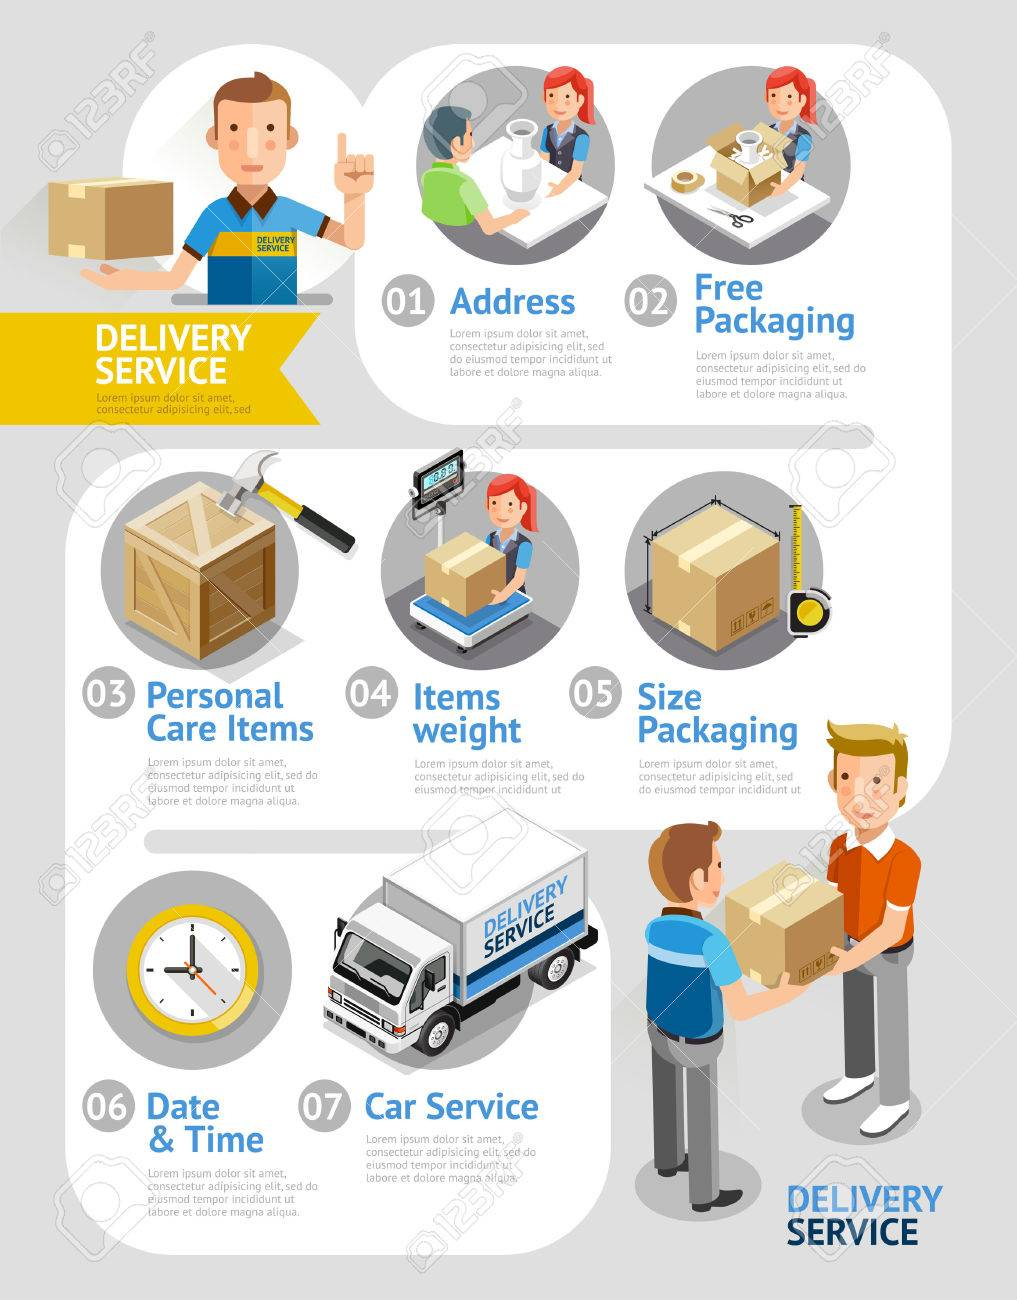 Delivery Service Conceptual Isometric Flat Style. Illustration. Can Be Used For Workflow Layout Template, Diagram, Number Options, Web Design, Infographics, Timeline. - 50958310